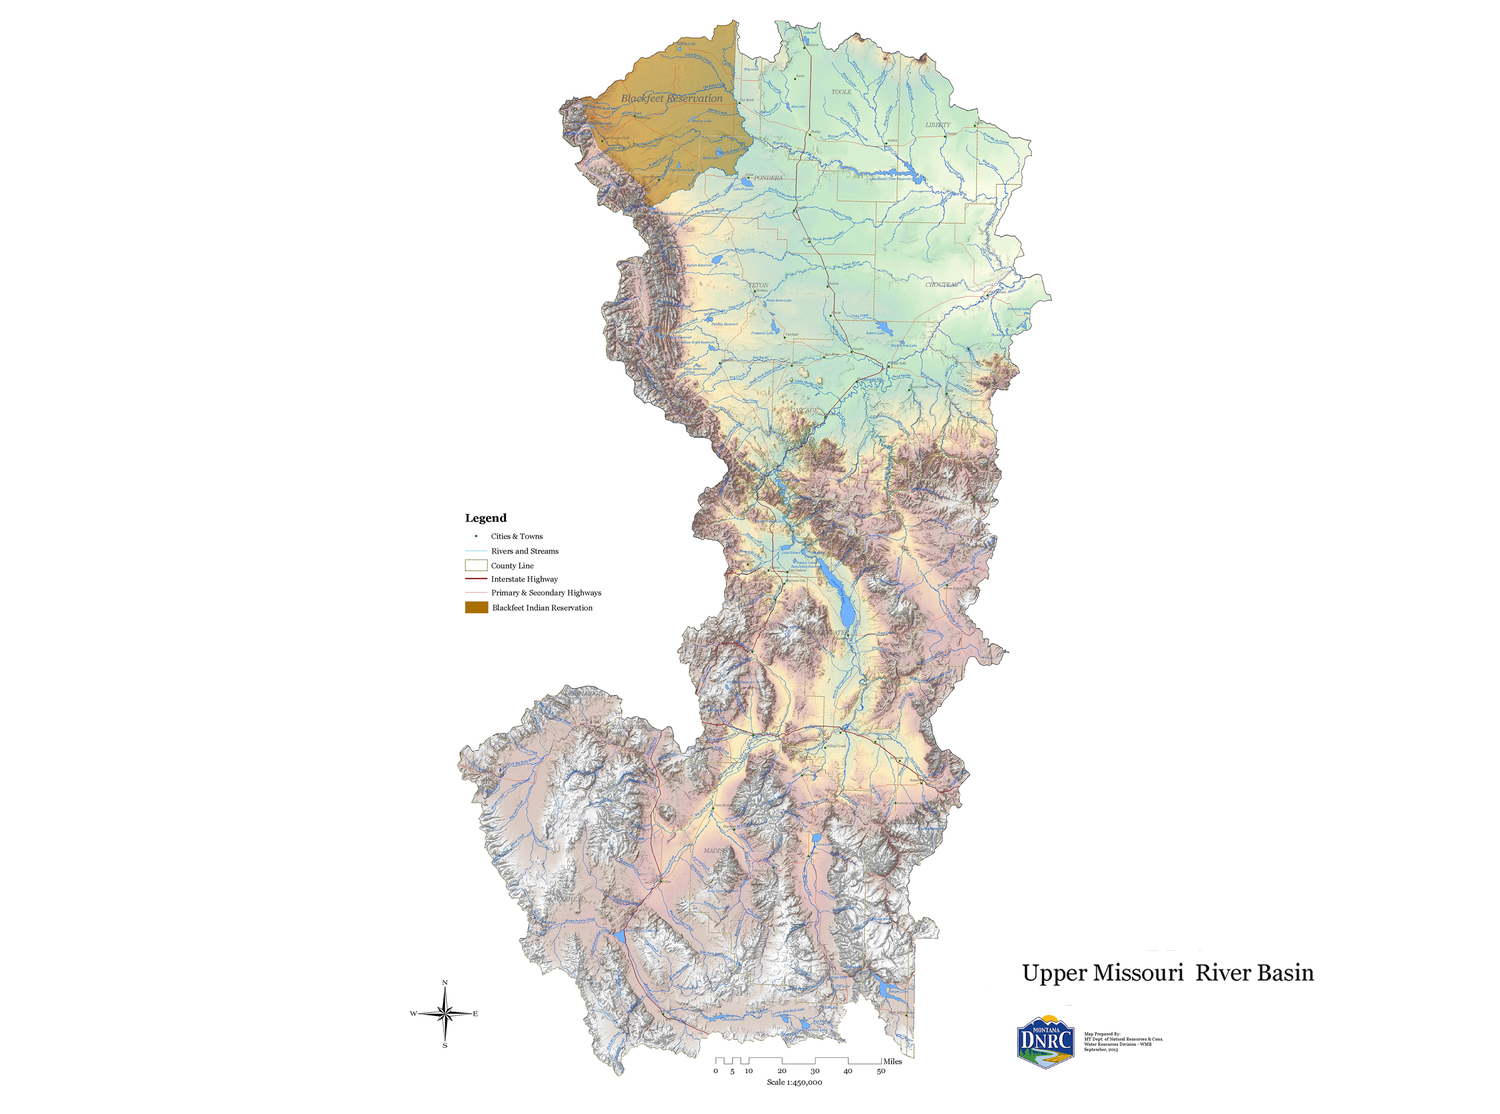 Montana State Map With Cities And Towns.2015 Montana State Water Plan Montana Water Center